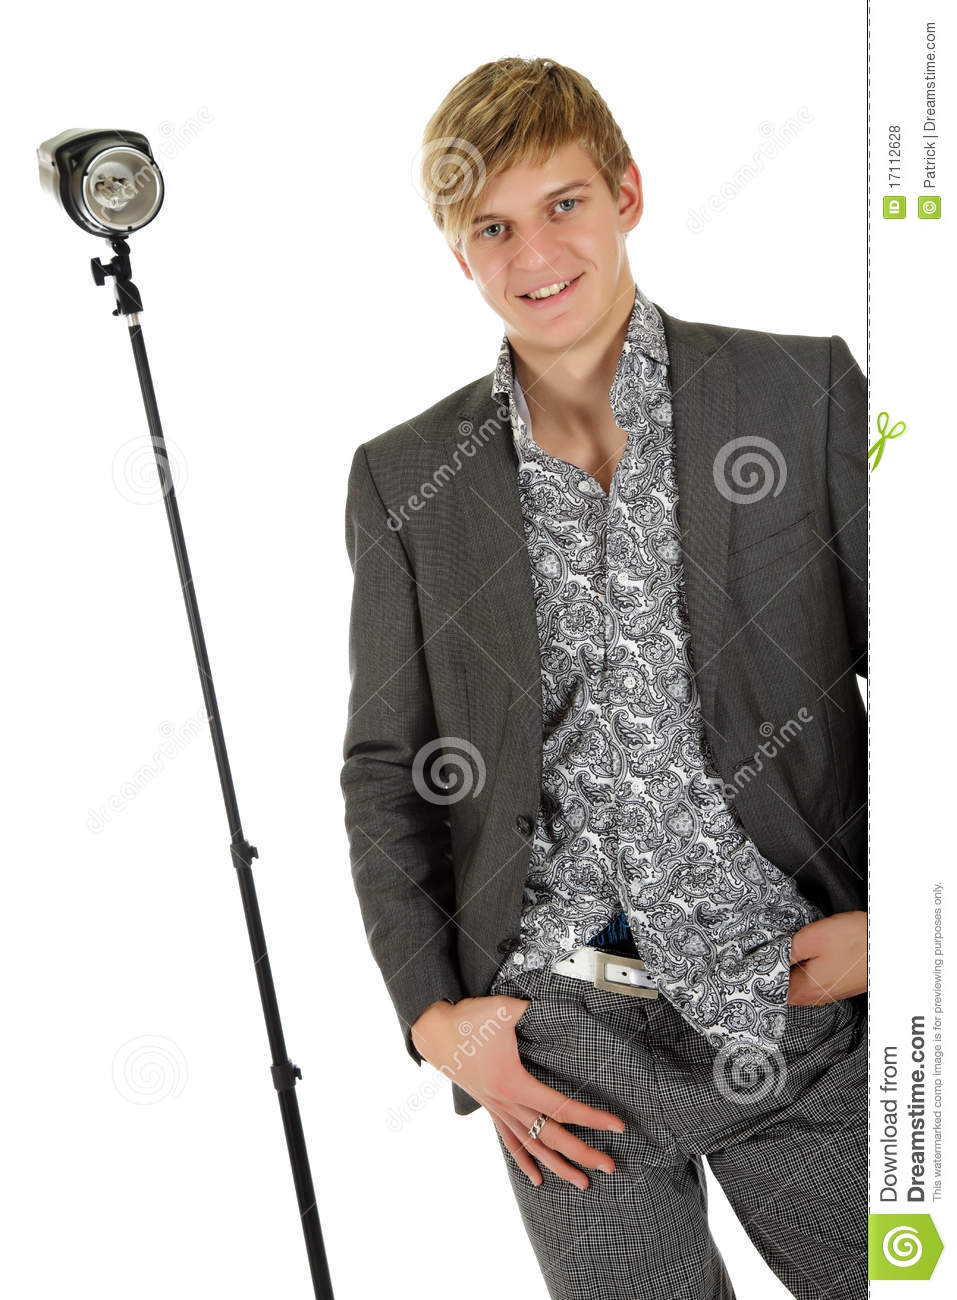 Young man model, thumb in pocket